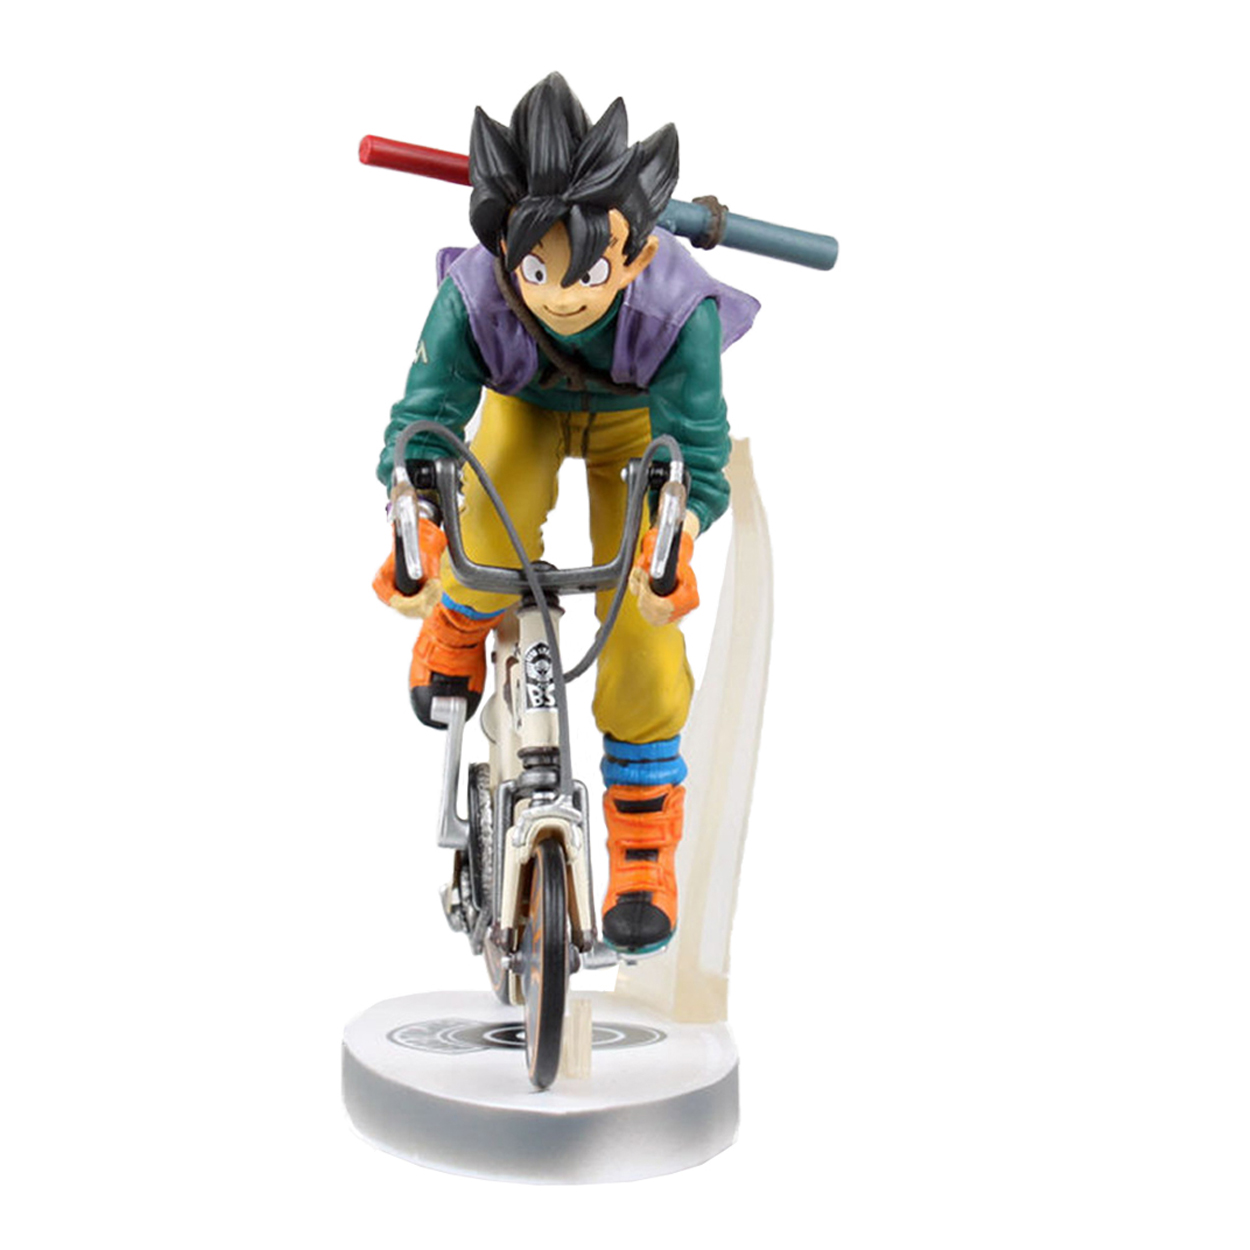 Chanycore 23CM Anime Dragon Ball Z Son GOKU Super Saiyan Action Figures crystal balls PVC Limit Boxed For Kids Gift Toy 0394 7cm large size jp hand done animation crystal dragon ball set genuine model toy gift action figures anime toys kids